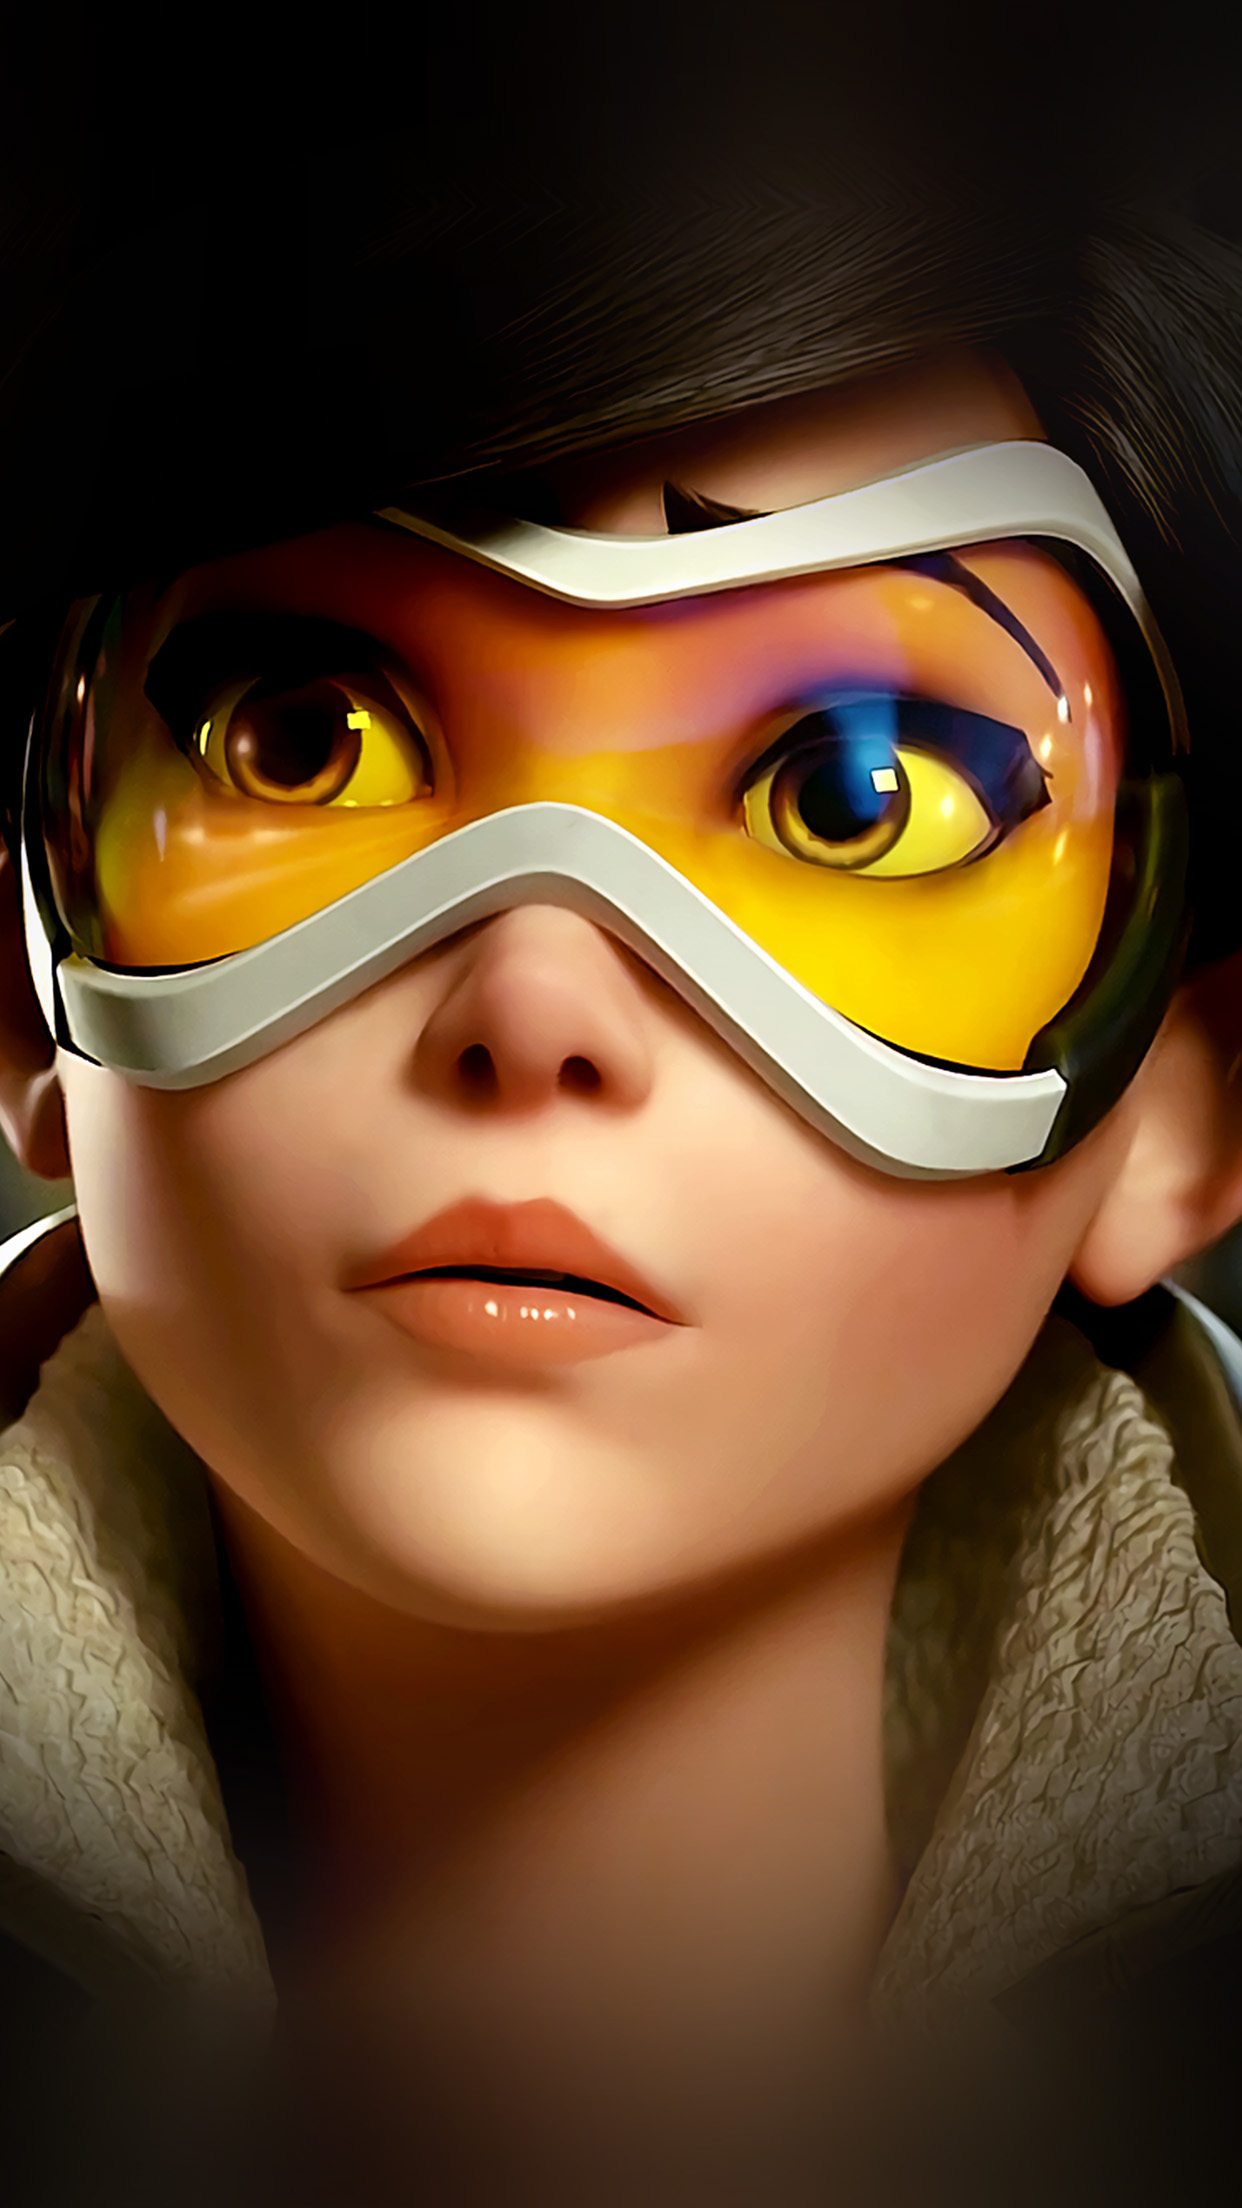 Overwatch: Tracer Wallpaper for iPhone 11, Pro Max, X, 8 ...